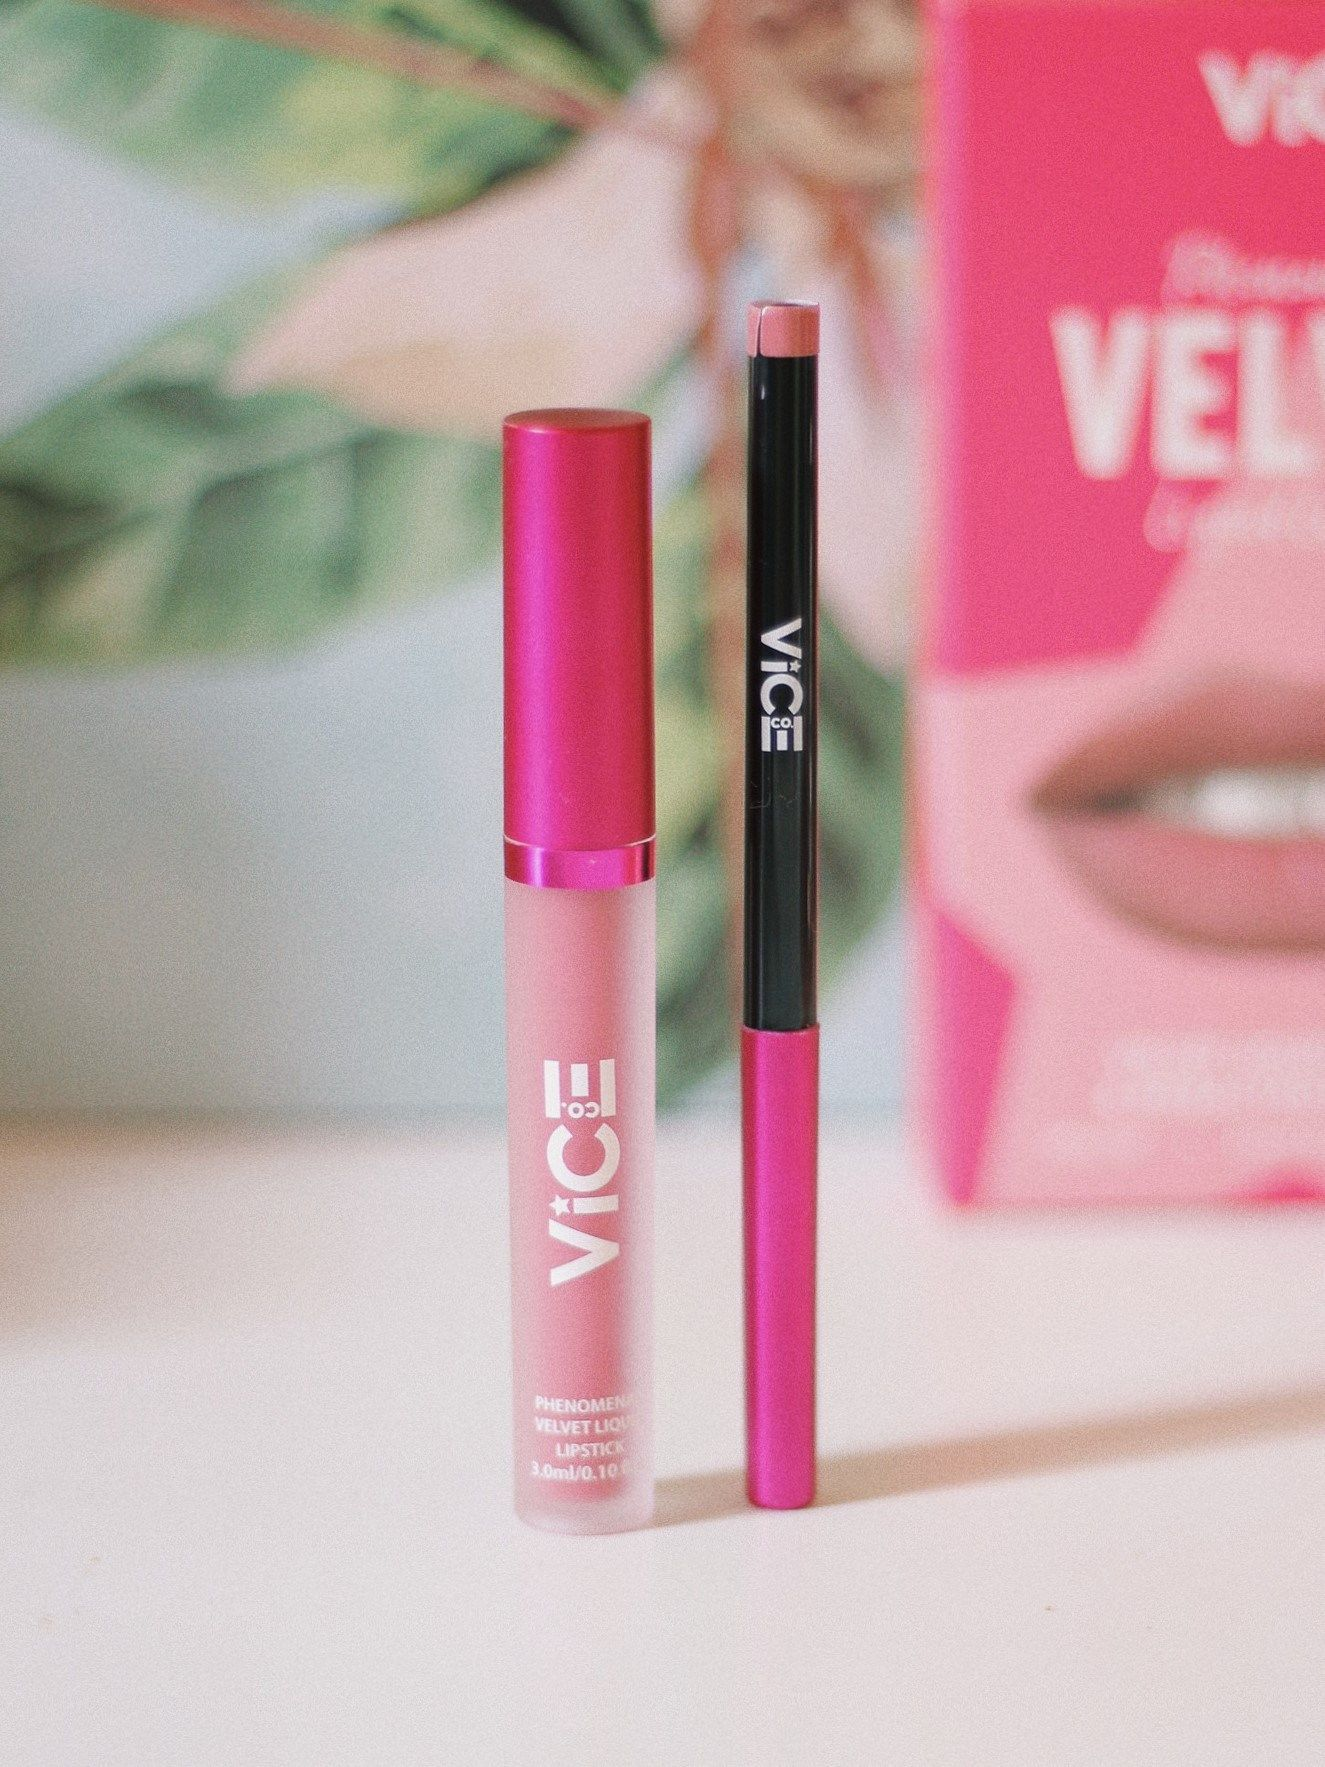 Vice Cosmetics Phenomenal Velvet Liquid Lip Kit Review Iteklavu